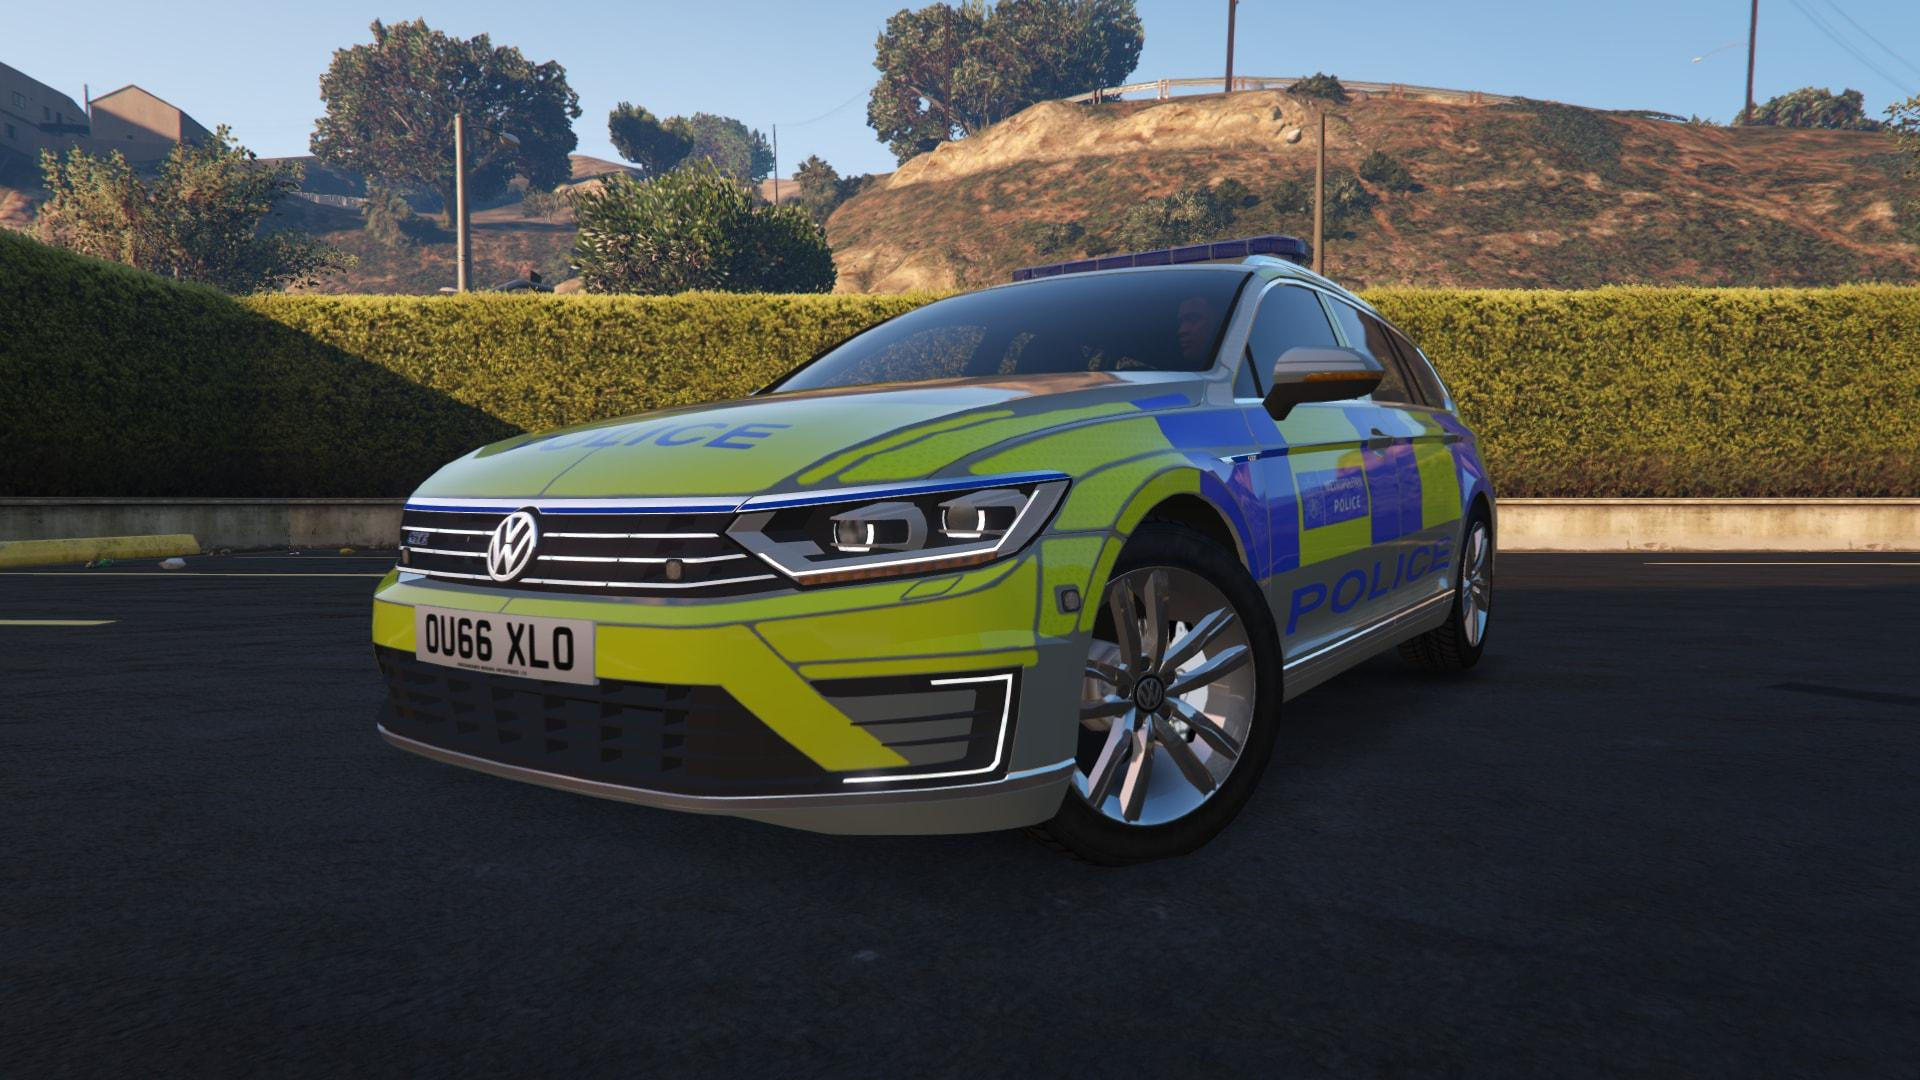 2017 met police volkswagen passat gte estate els gta5. Black Bedroom Furniture Sets. Home Design Ideas